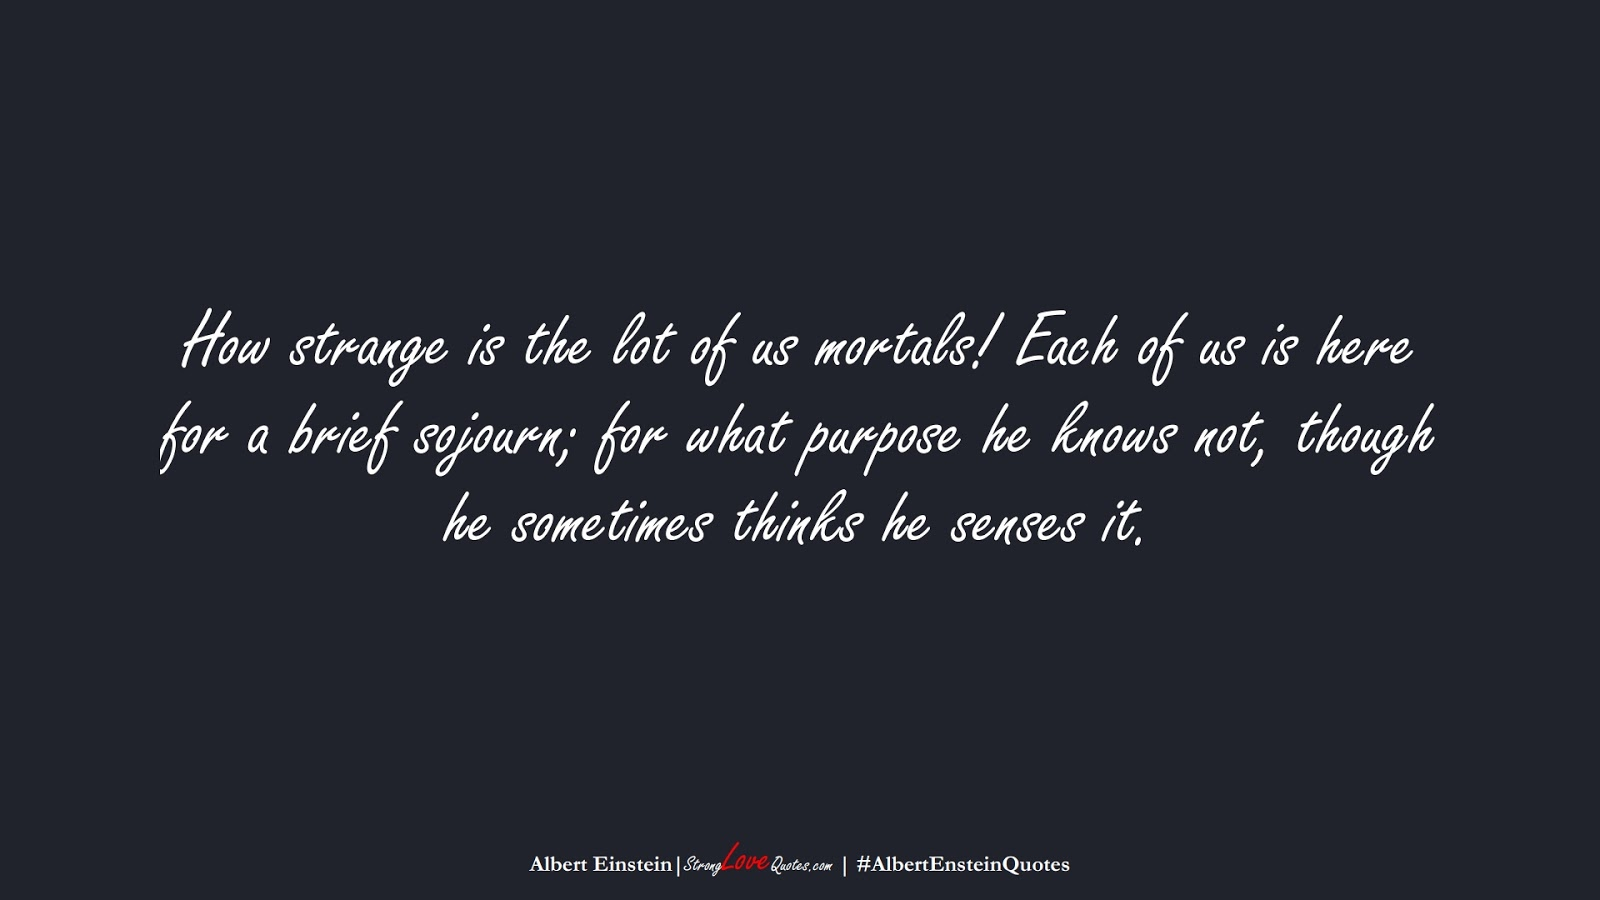 How strange is the lot of us mortals! Each of us is here for a brief sojourn; for what purpose he knows not, though he sometimes thinks he senses it. (Albert Einstein);  #AlbertEnsteinQuotes